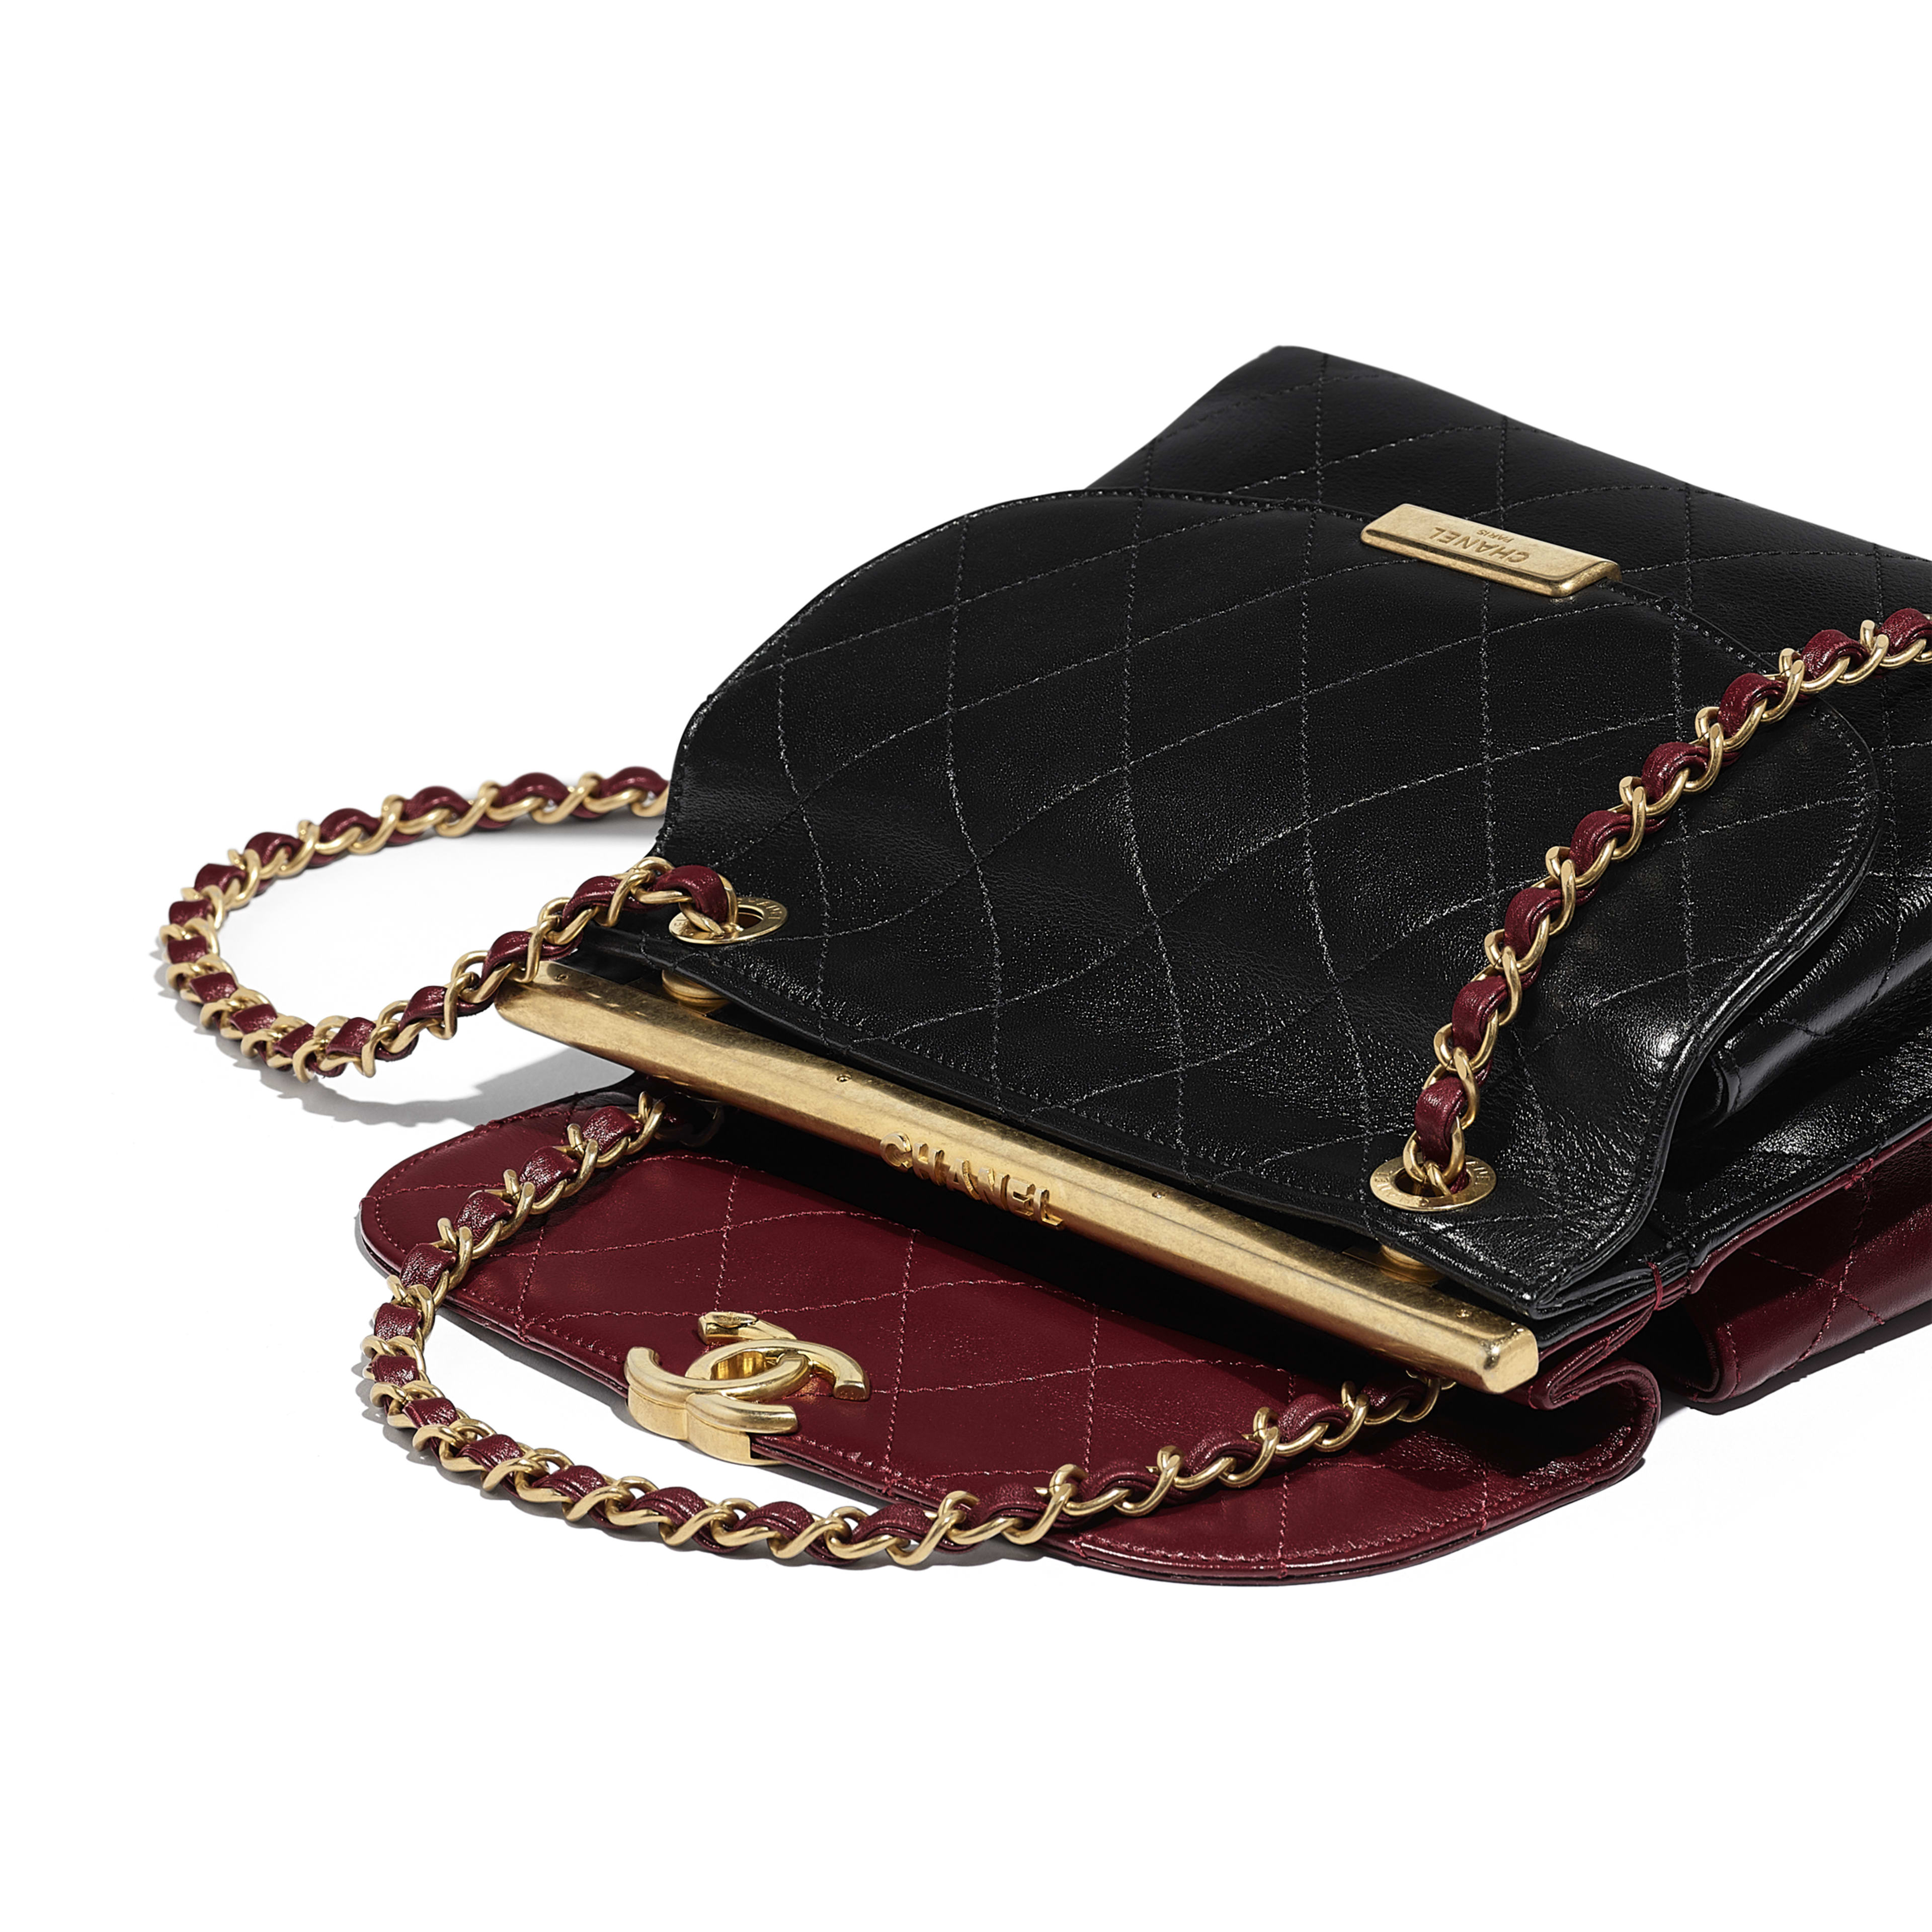 Flap Bag - Burgundy & Black - Lambskin - Extra view - see full sized version